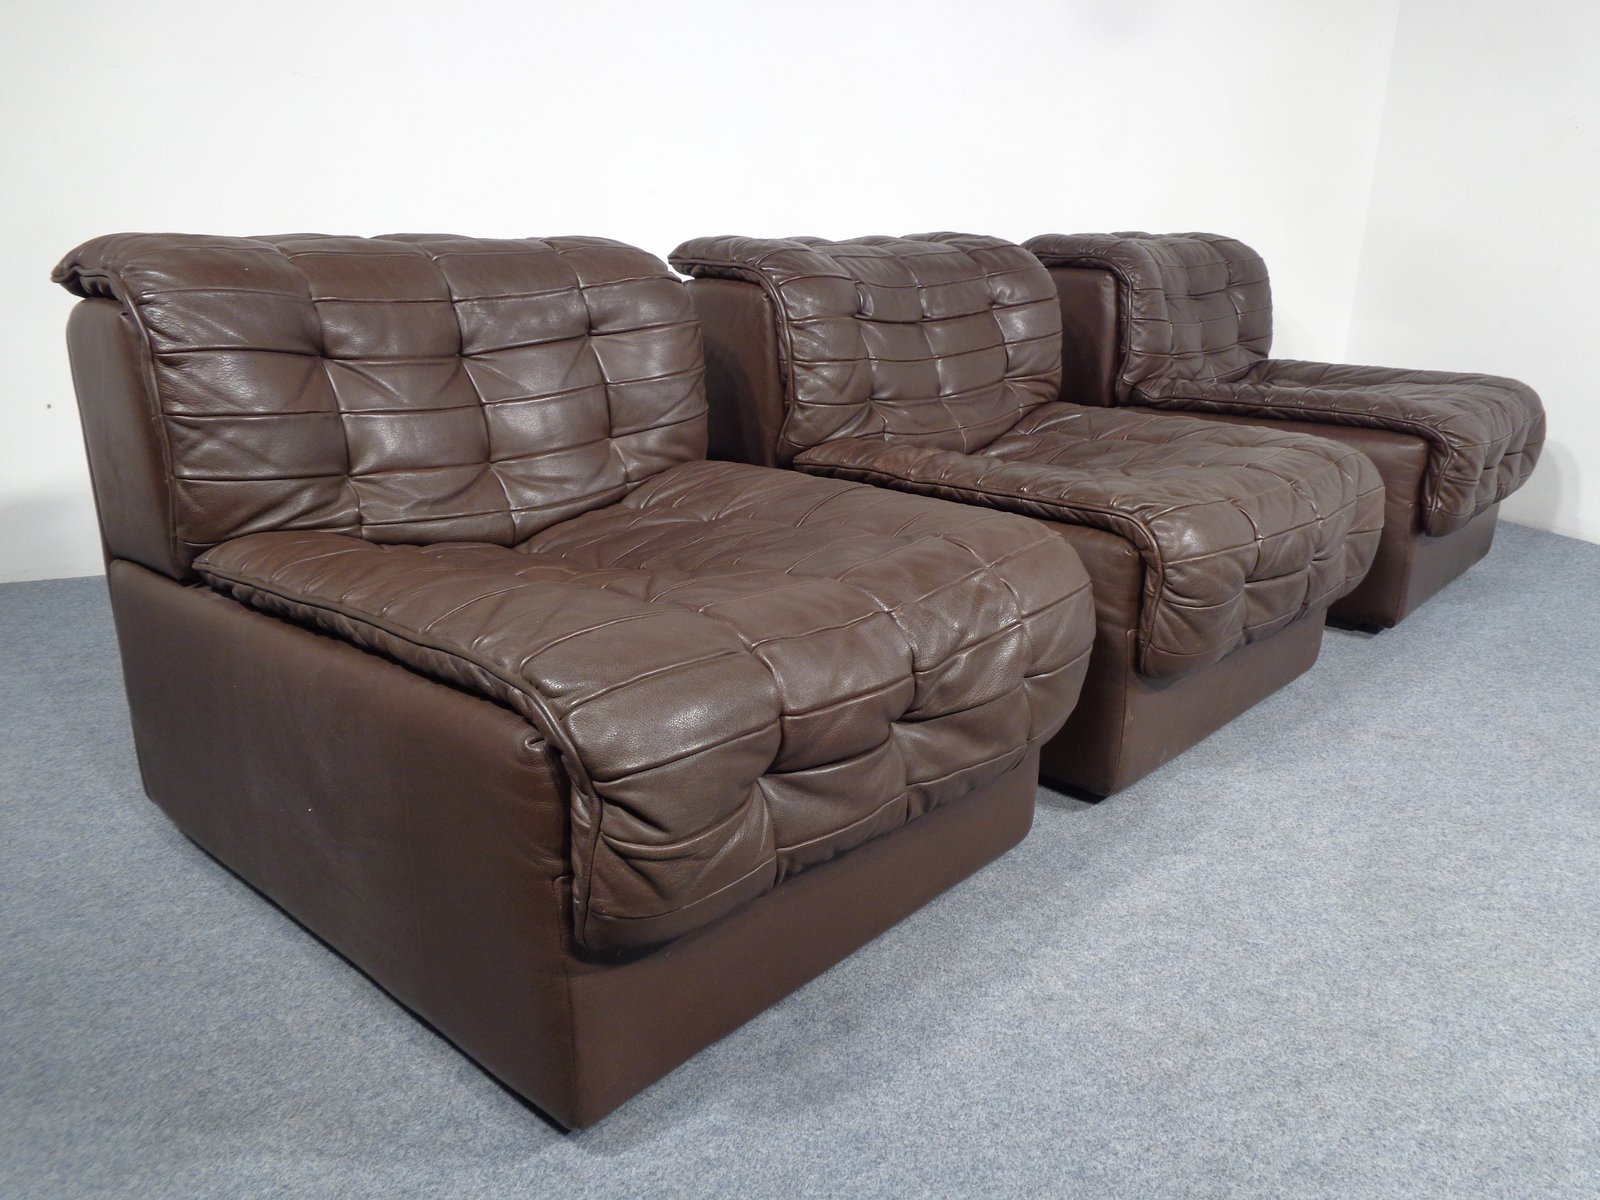 swiss ds 11 leather sofa from de sede 1970s for sale at pamono. Black Bedroom Furniture Sets. Home Design Ideas